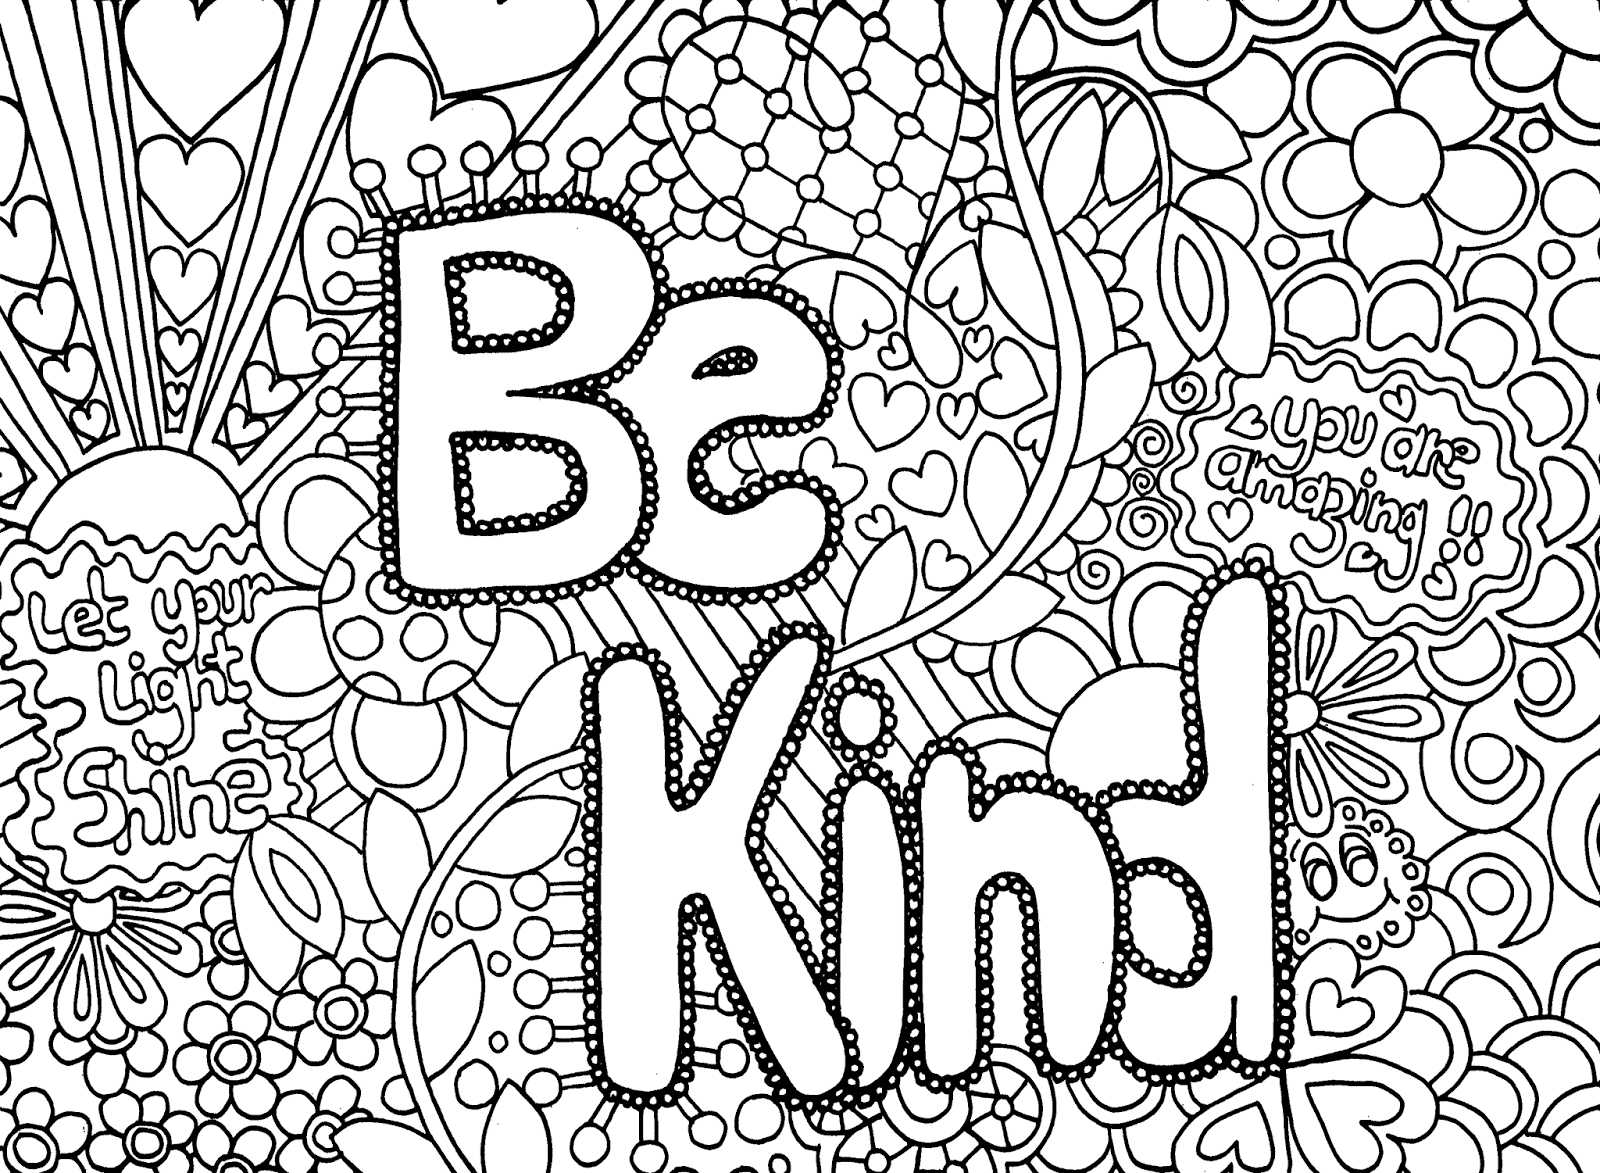 for the last few years kids coloring pages printed from the internet have become an very - Color Pages